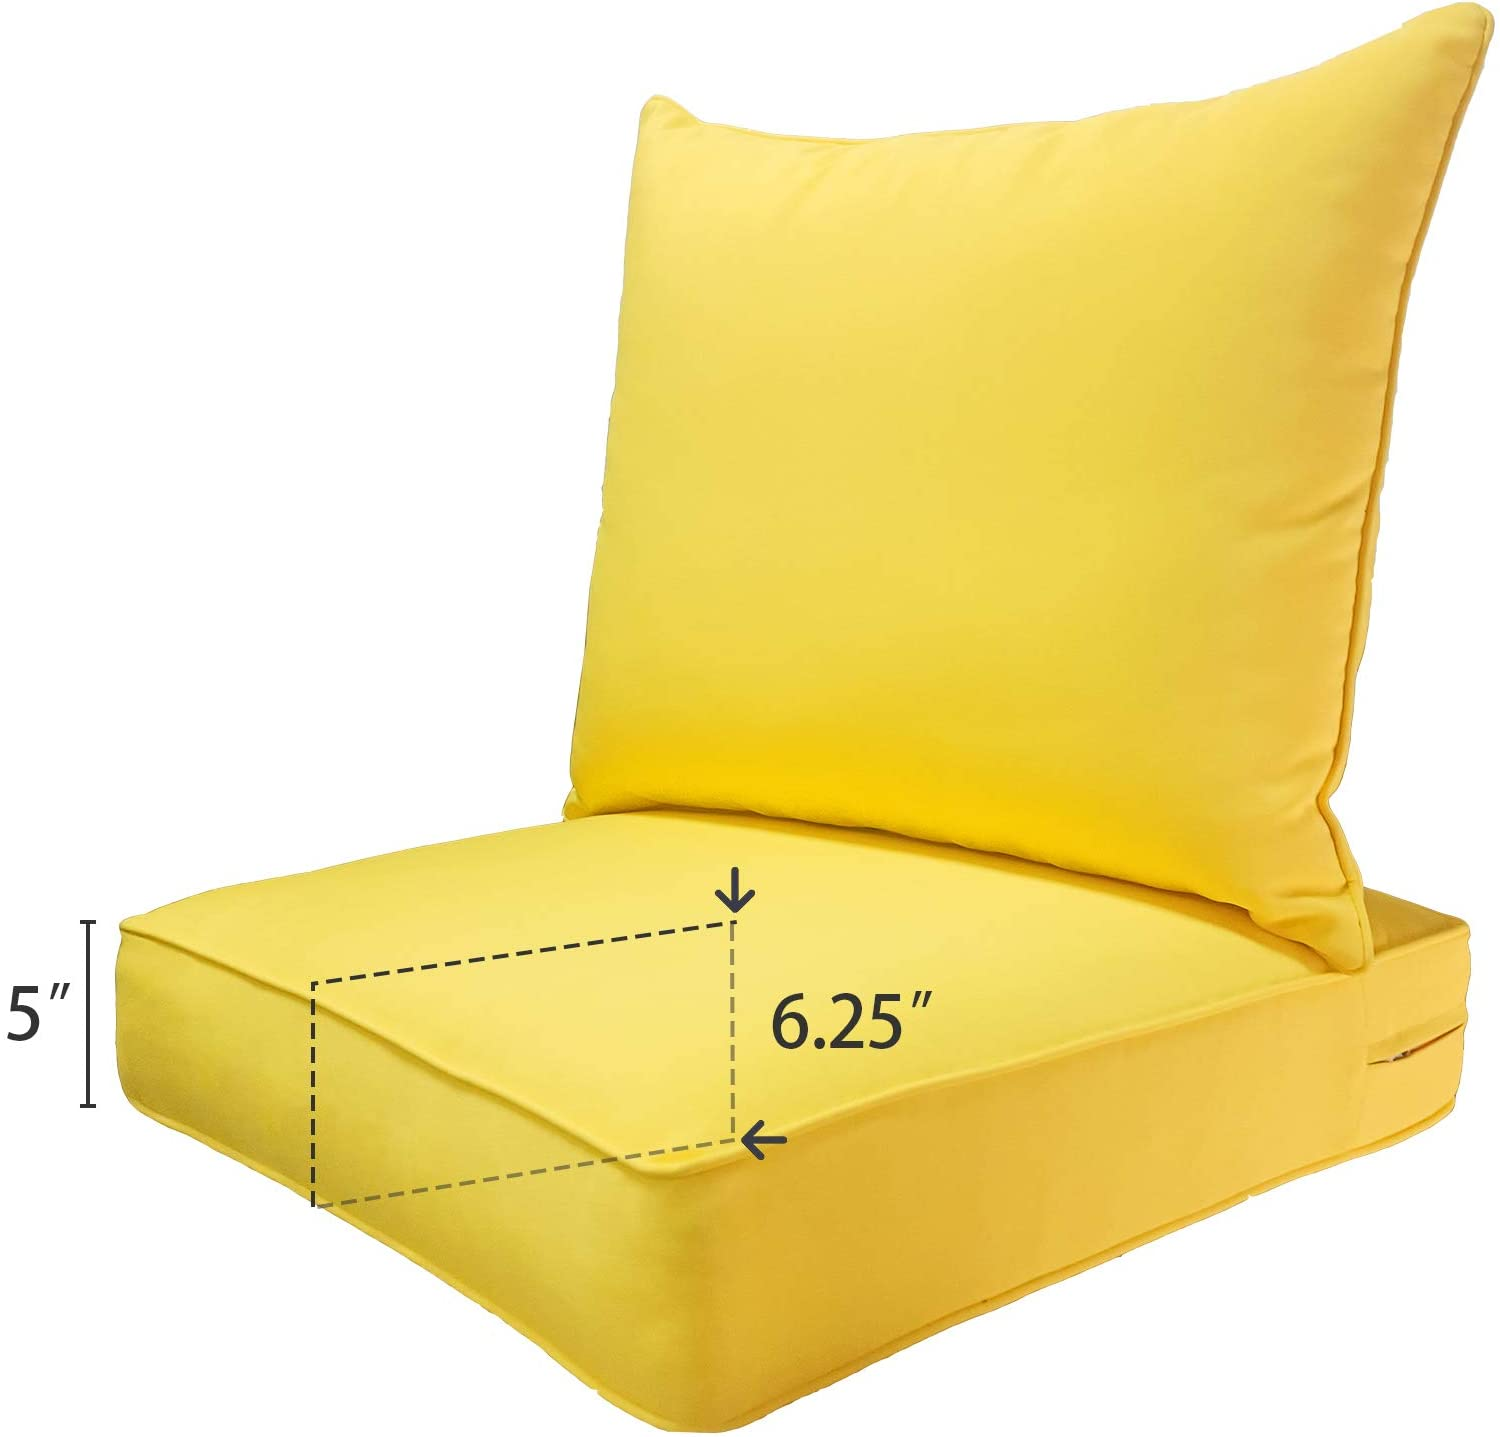 SewKer Outdoor Chair Cushion, 24x24 Deep Seat Patio Furniture Replacement Cushions Set - Yellow